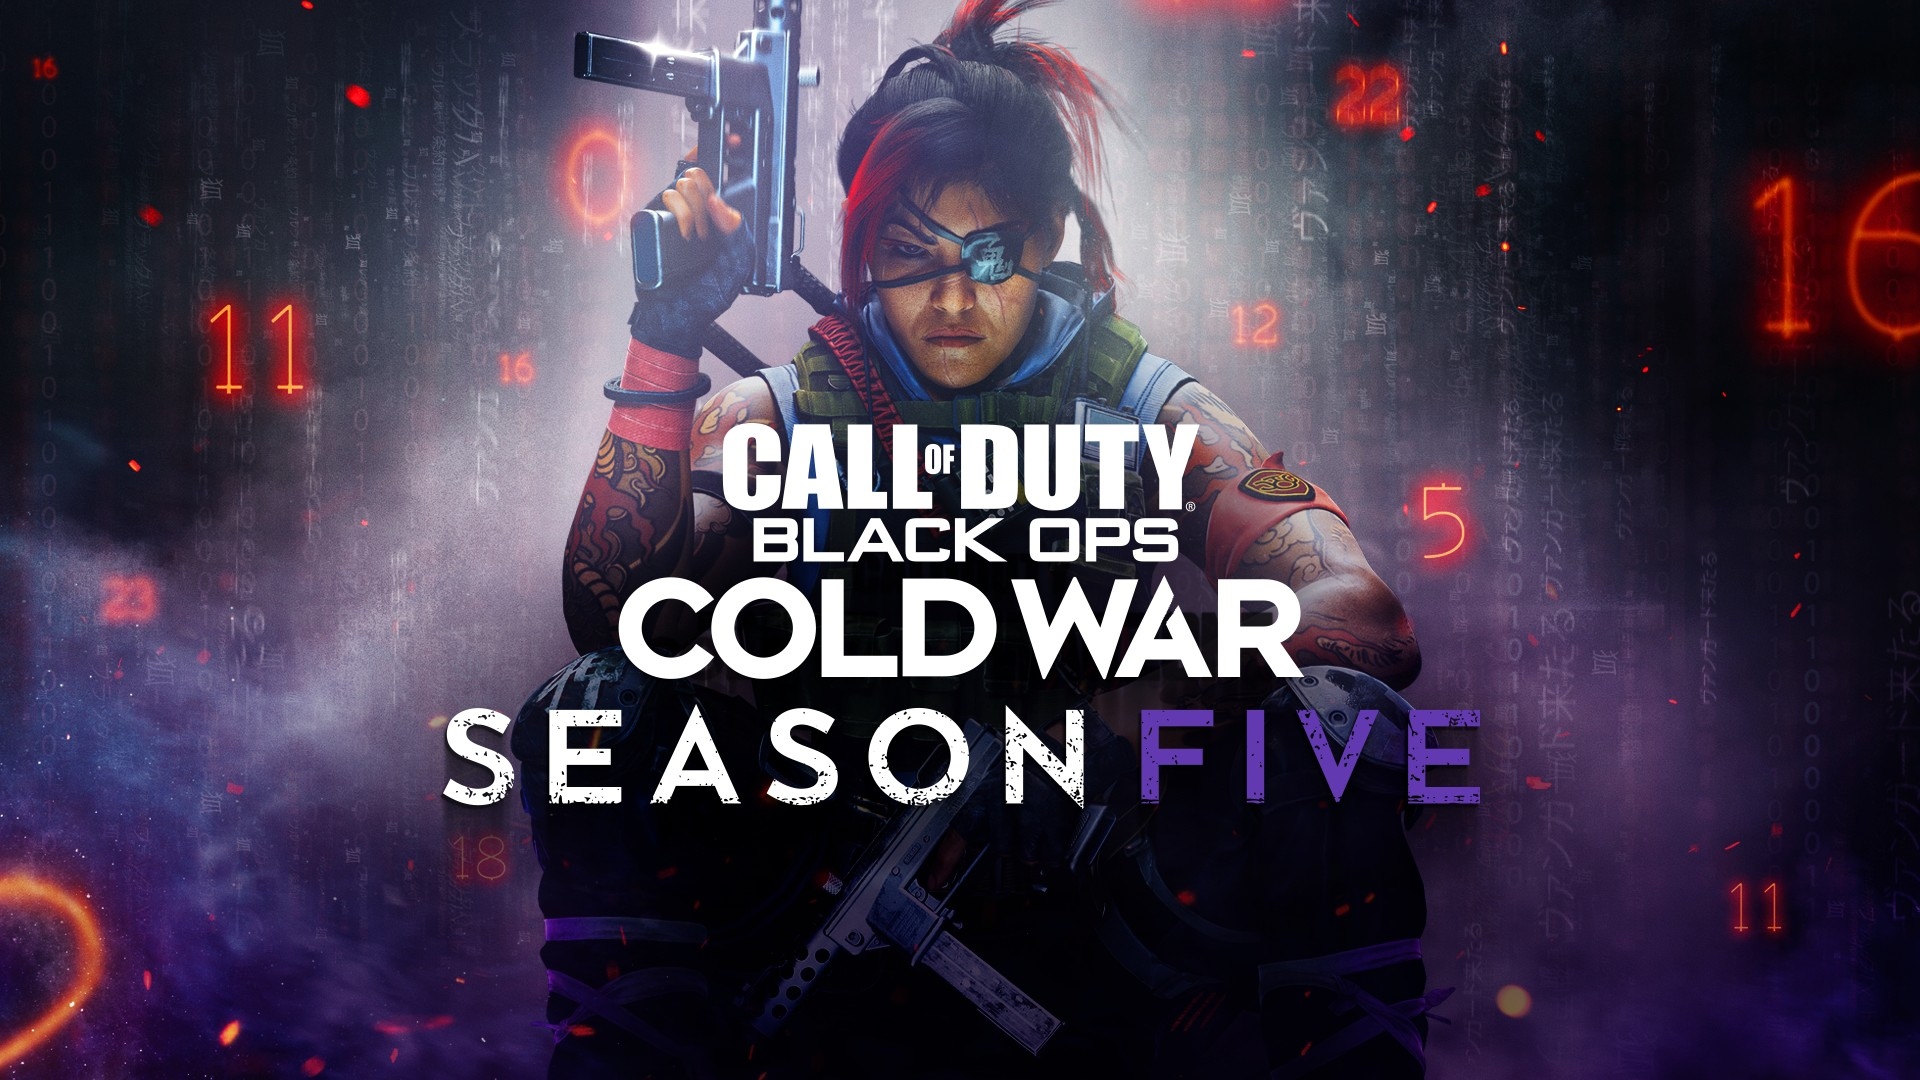 Call of Duty: Black Ops Cold War and Warzone